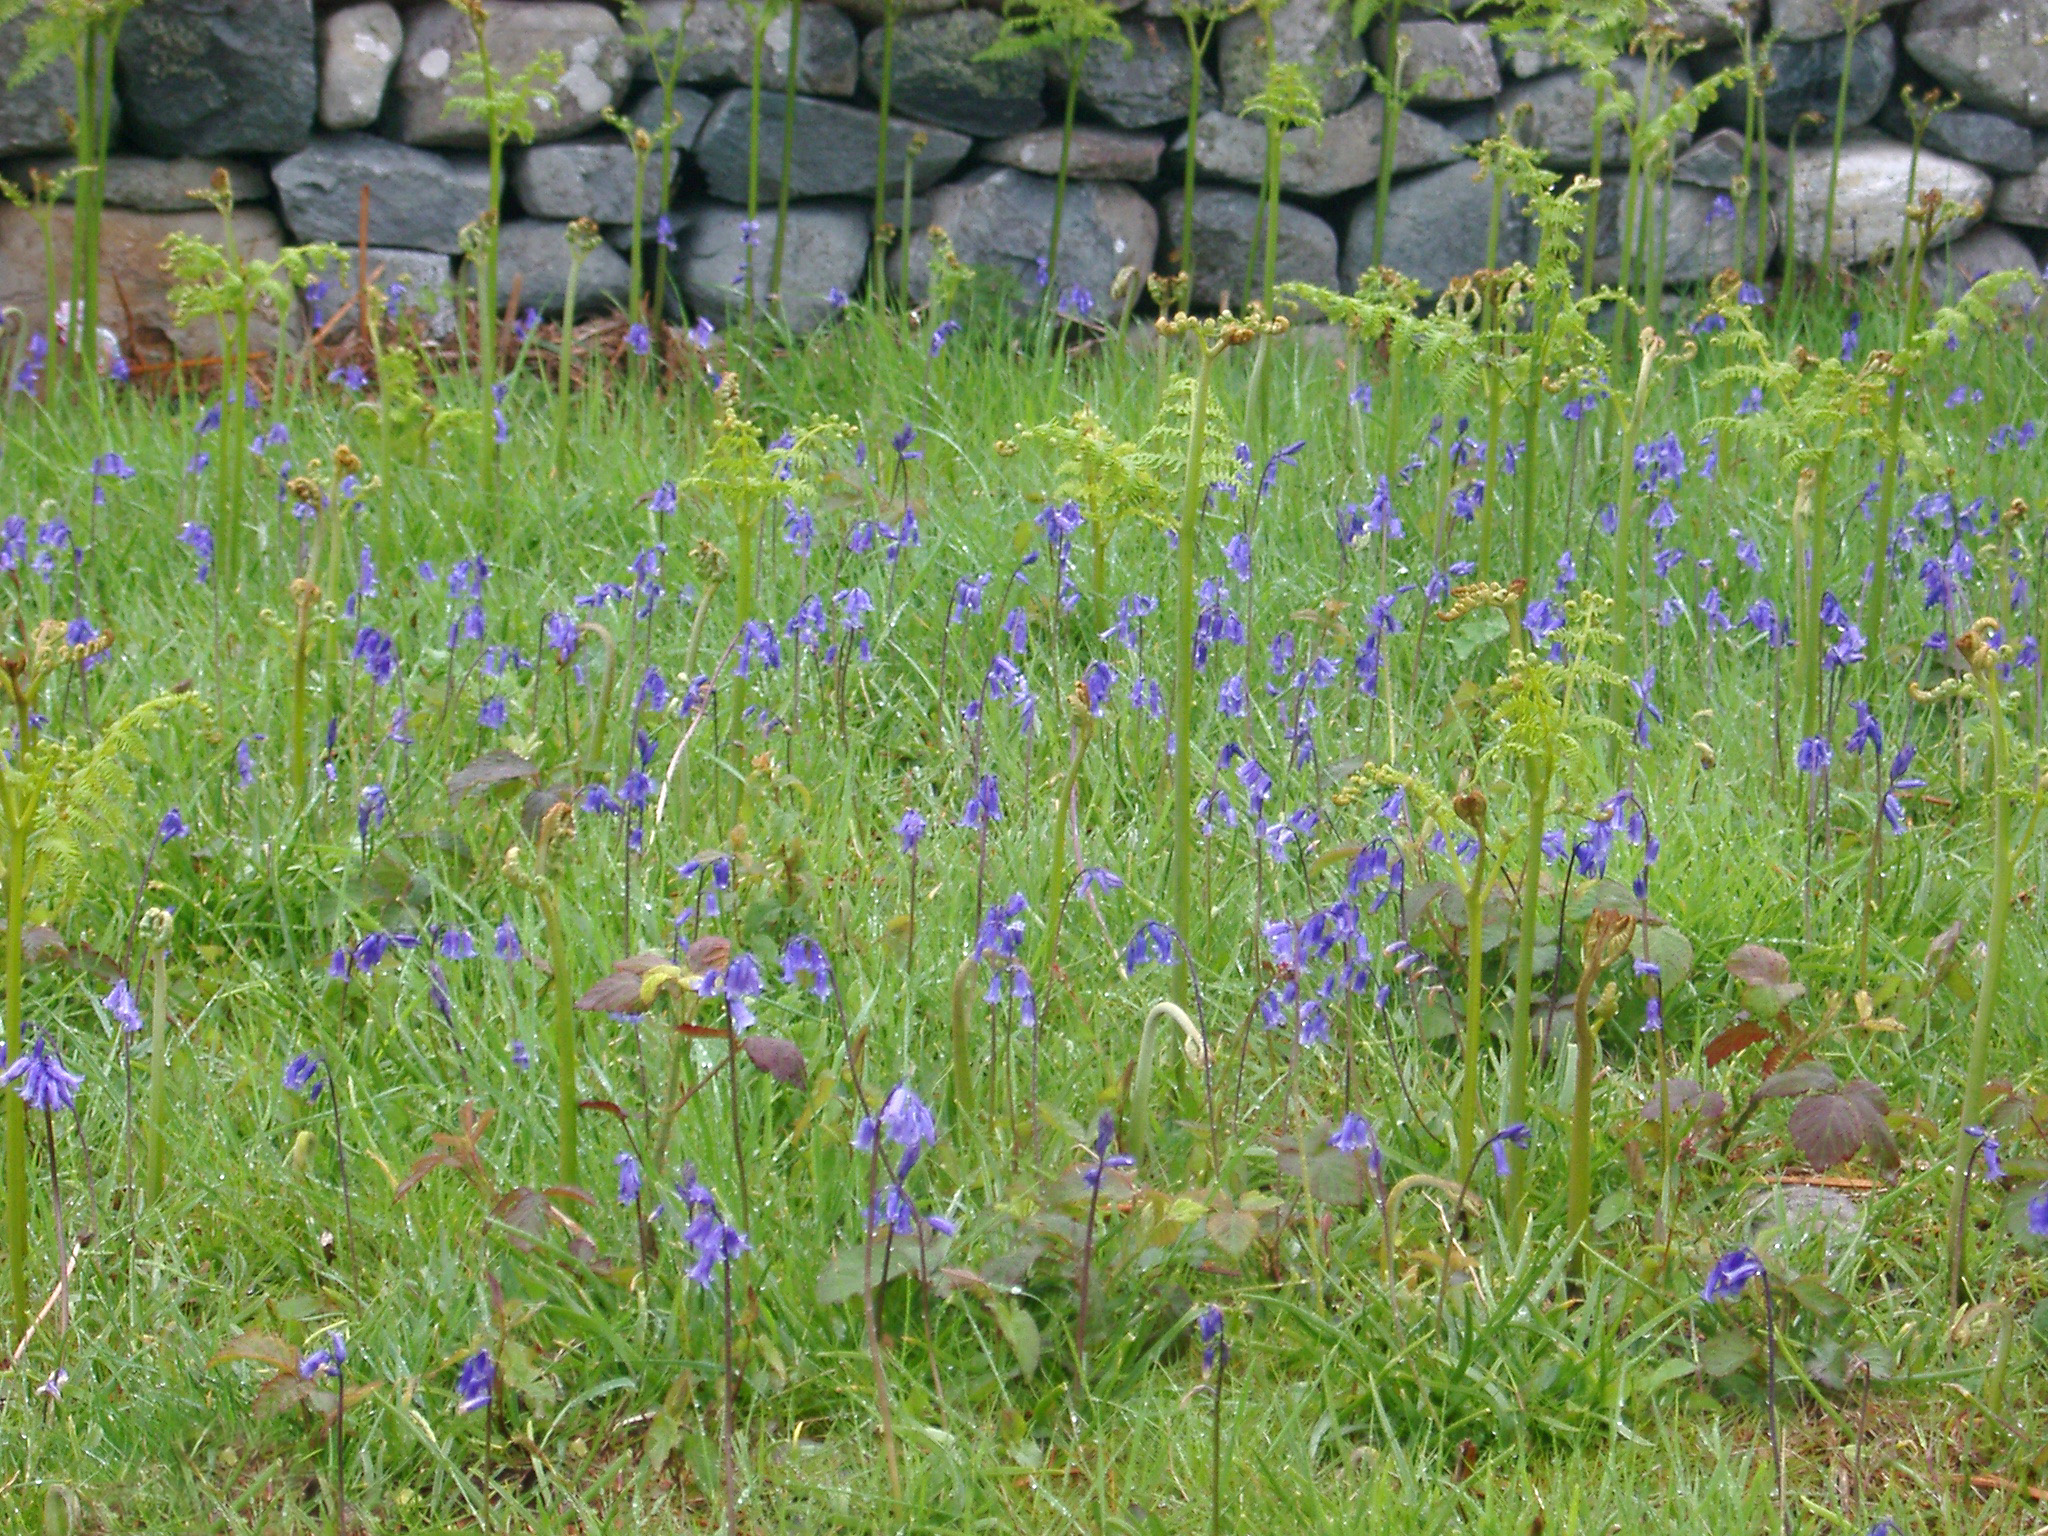 Colorful blue bells flowering in a grassy meadow at the edge of an old stone wall